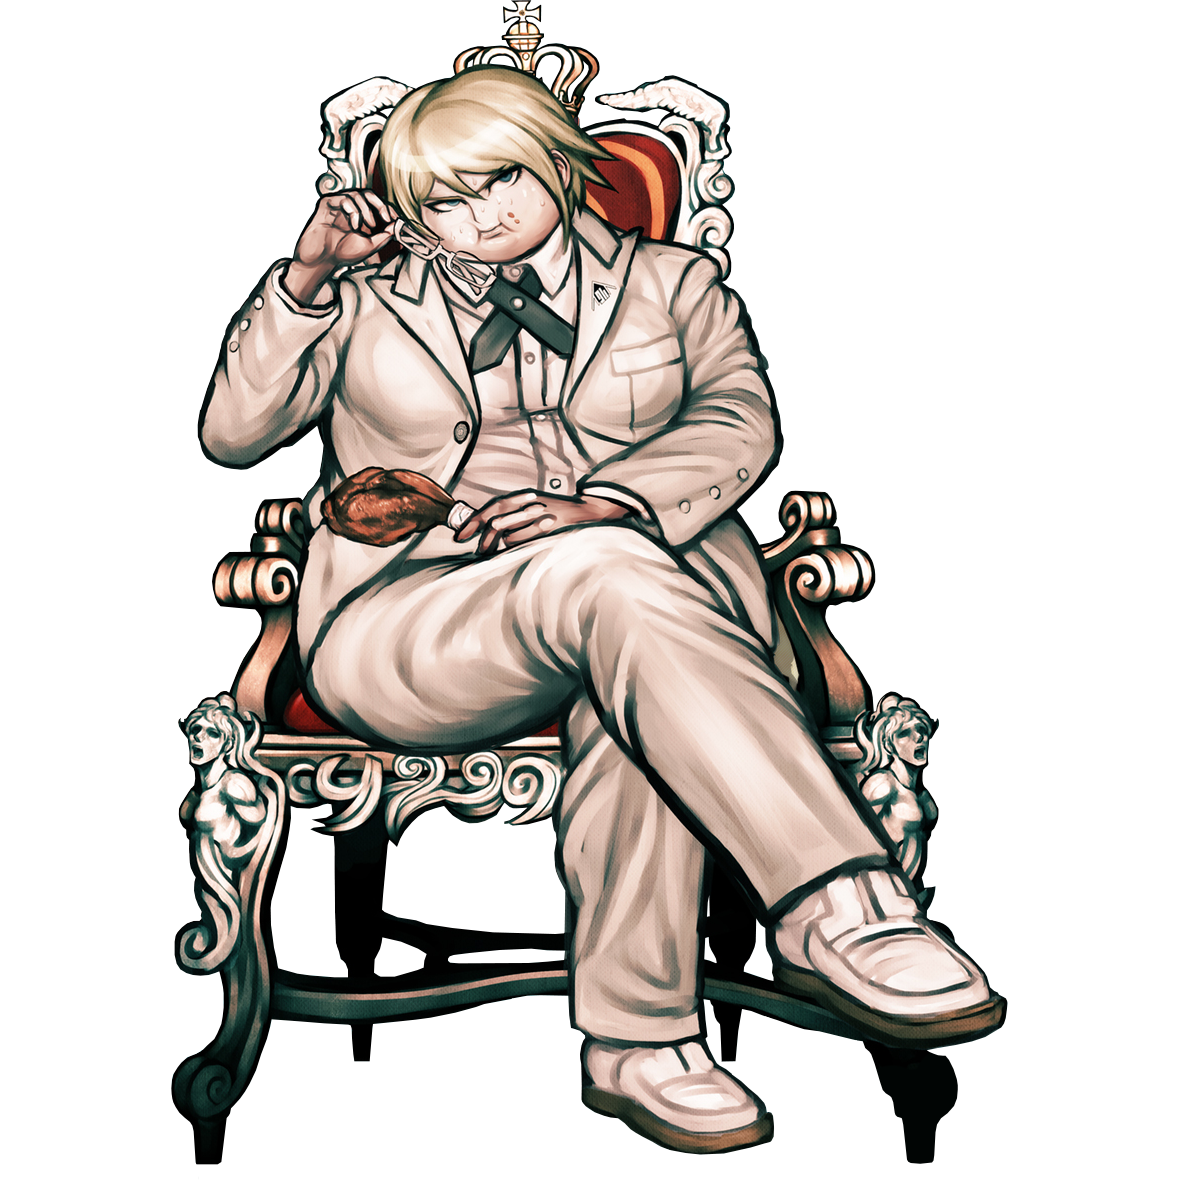 Gameinfos 4631 screenshots   Bendy And The Ink Machine furthermore Monaca together with Smash Ballots Wario 525213841 as well Disney Smash Bros For 3DS And Wii U 559257462 likewise File Byakuya Togami Ultimate Imposter Illustration. on anime trophies